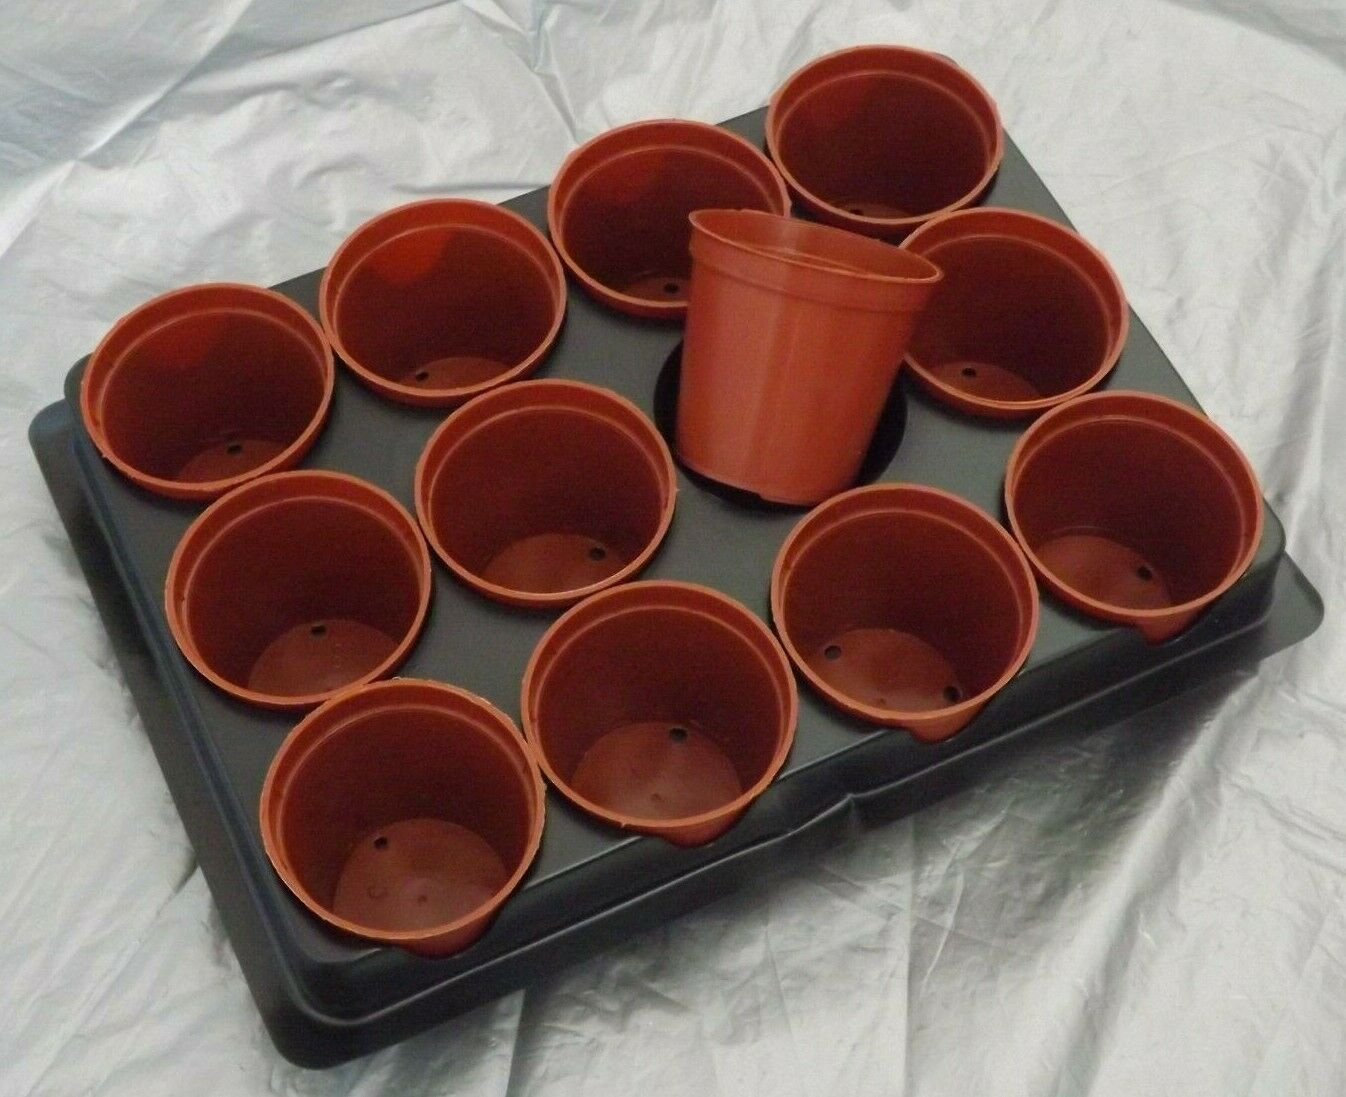 24 (2 x 12) Seedling Pots and Tray Lightweight Reusable Round 6cm Plastic Pots